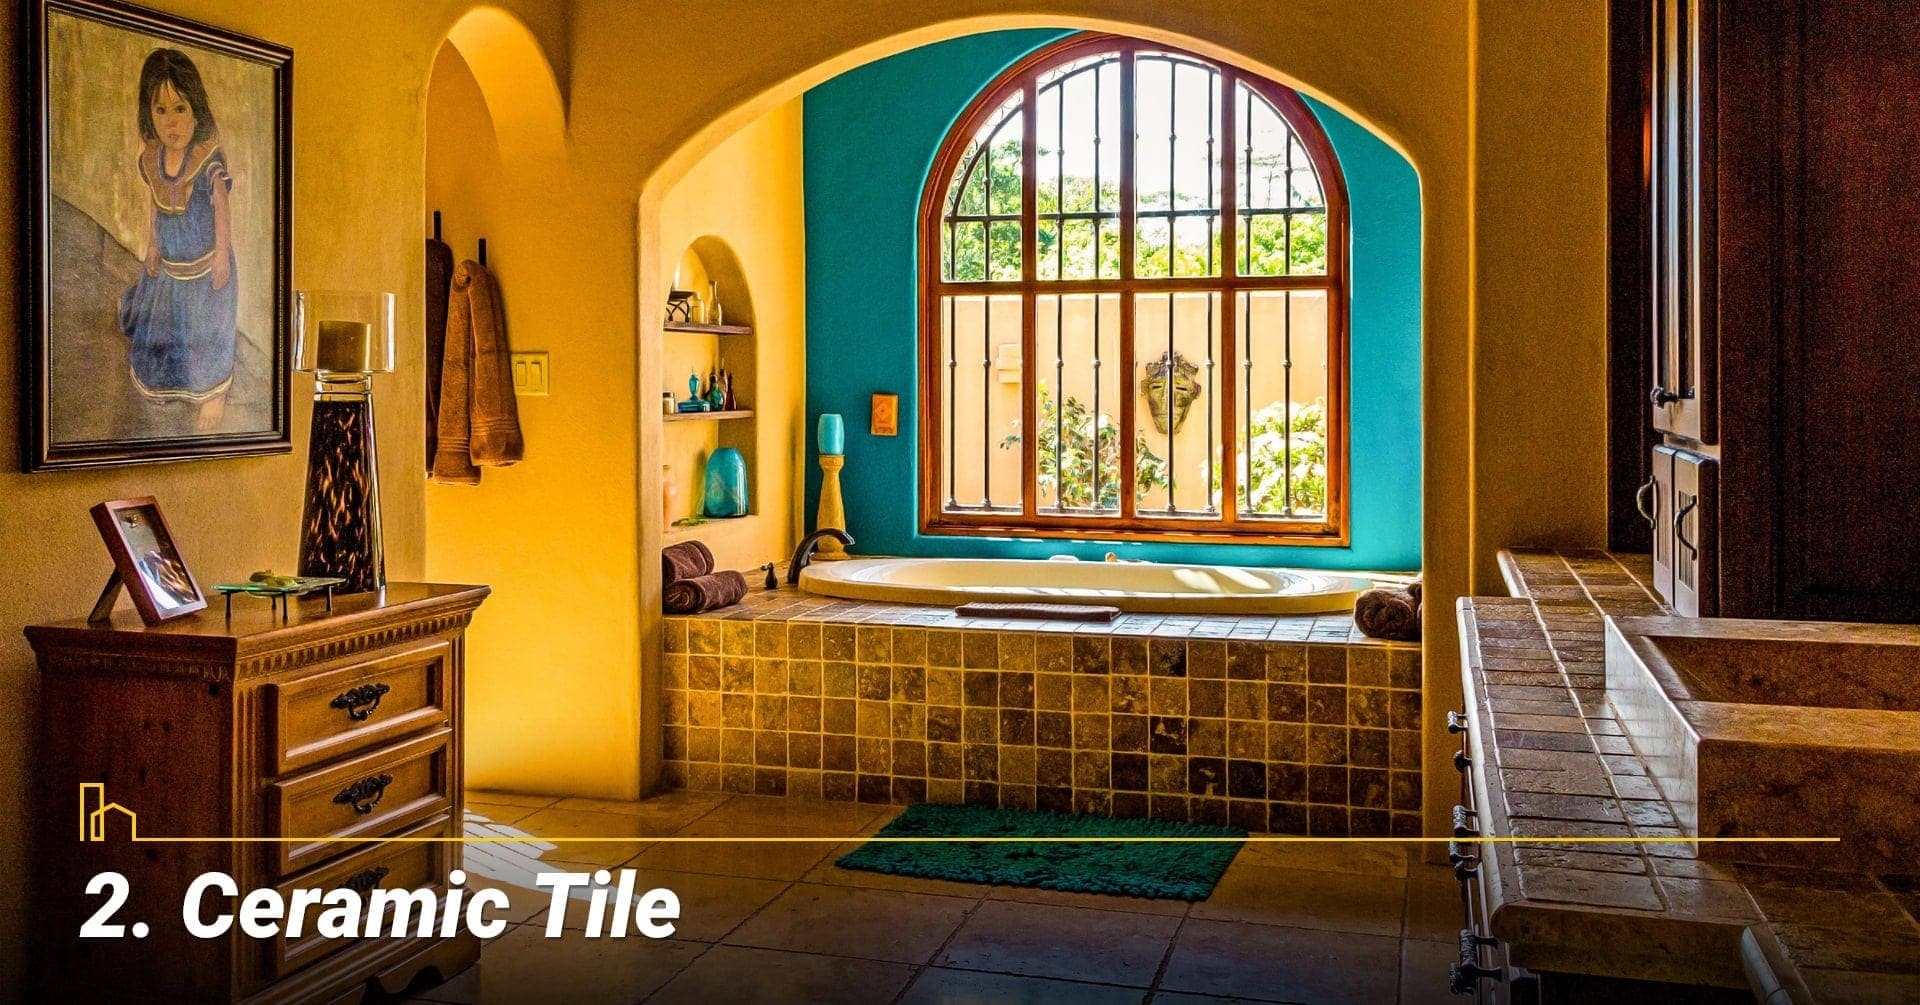 Ceramic Tile, cover your floor with ceramic tile